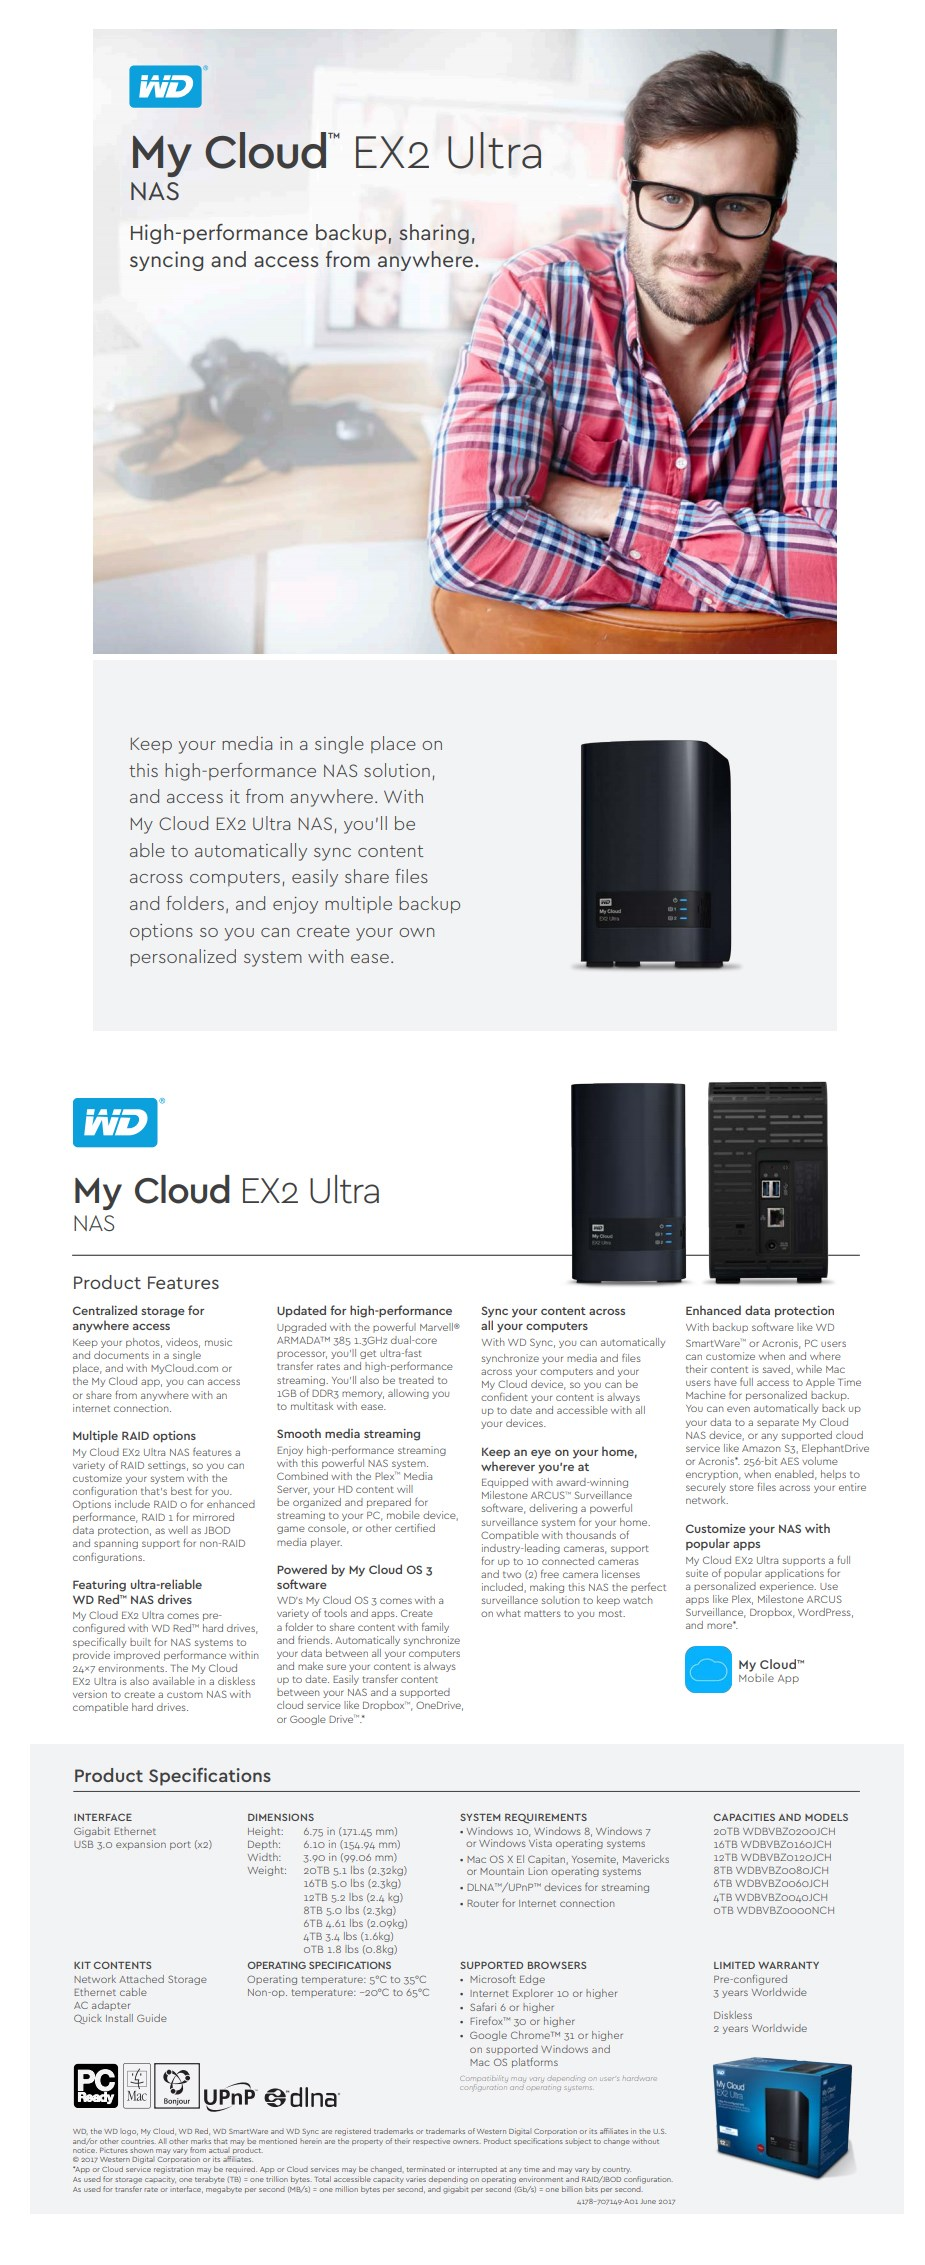 WD My Cloud EX2 Ultra 2-Bay 8TB Hotswap Diskless NAS 1.3GHz Dual-Core 1GB RAM - Overview 1